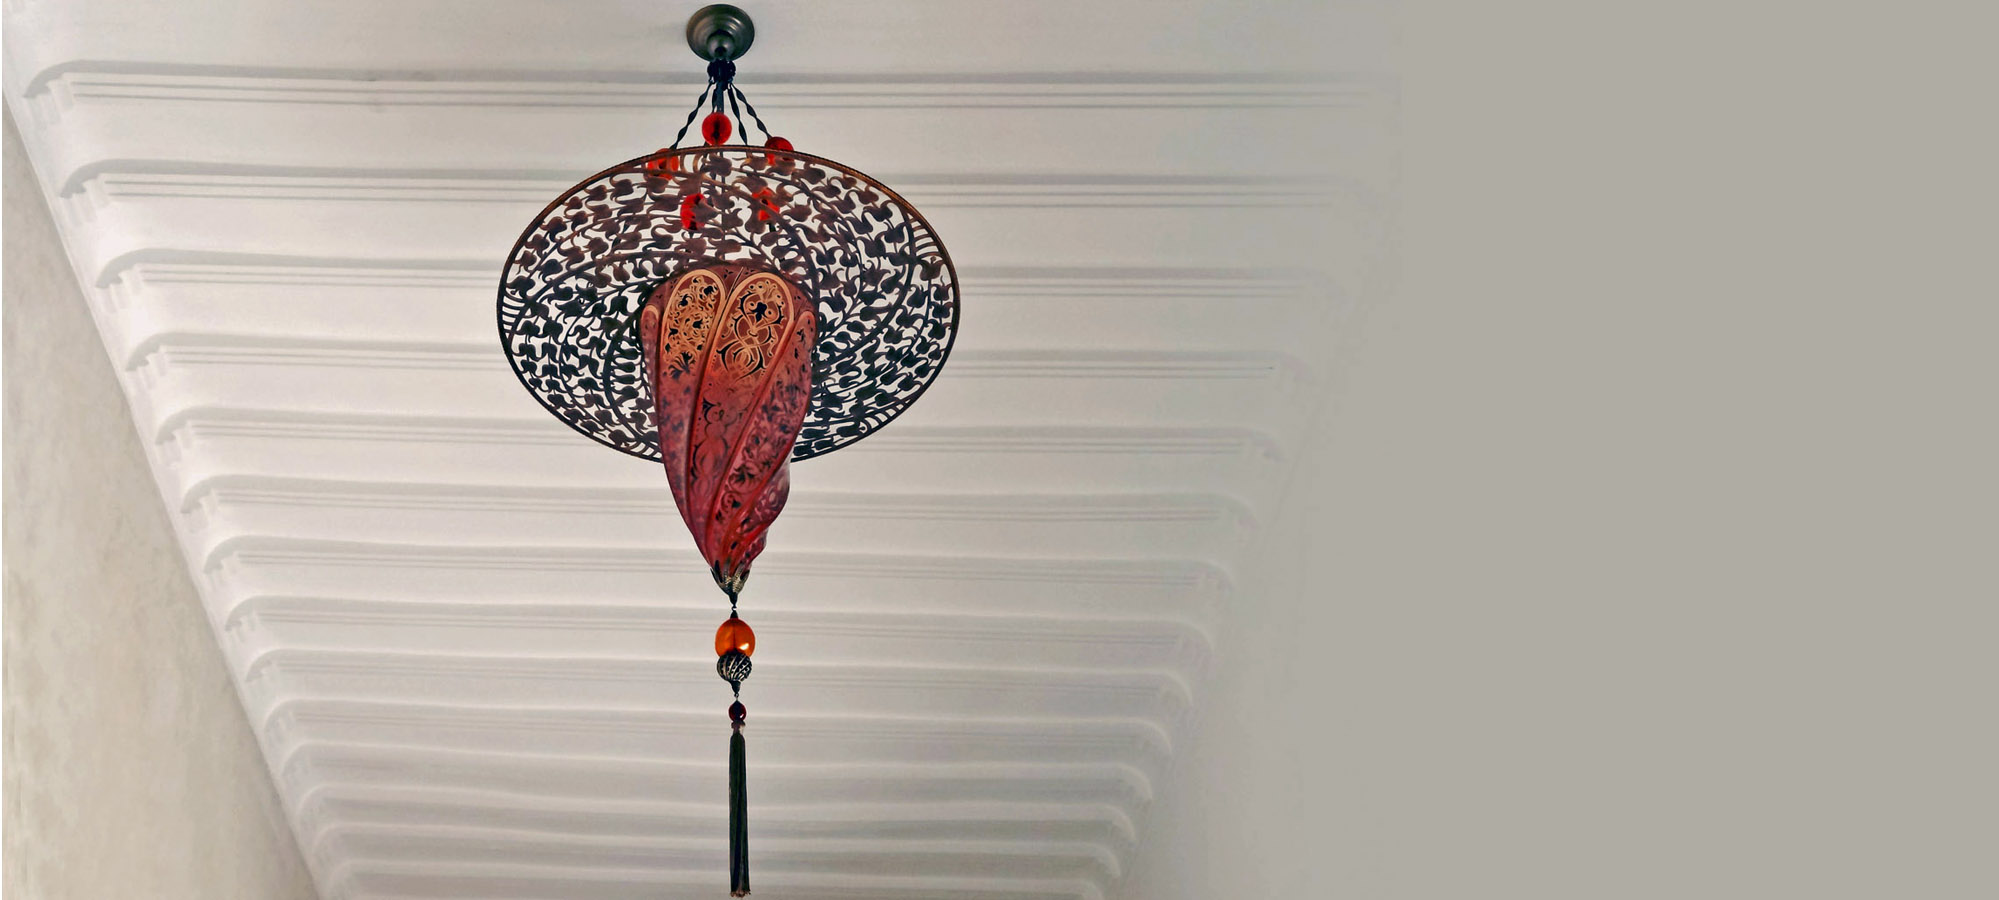 4. Ceiling Light Warm Long (1)